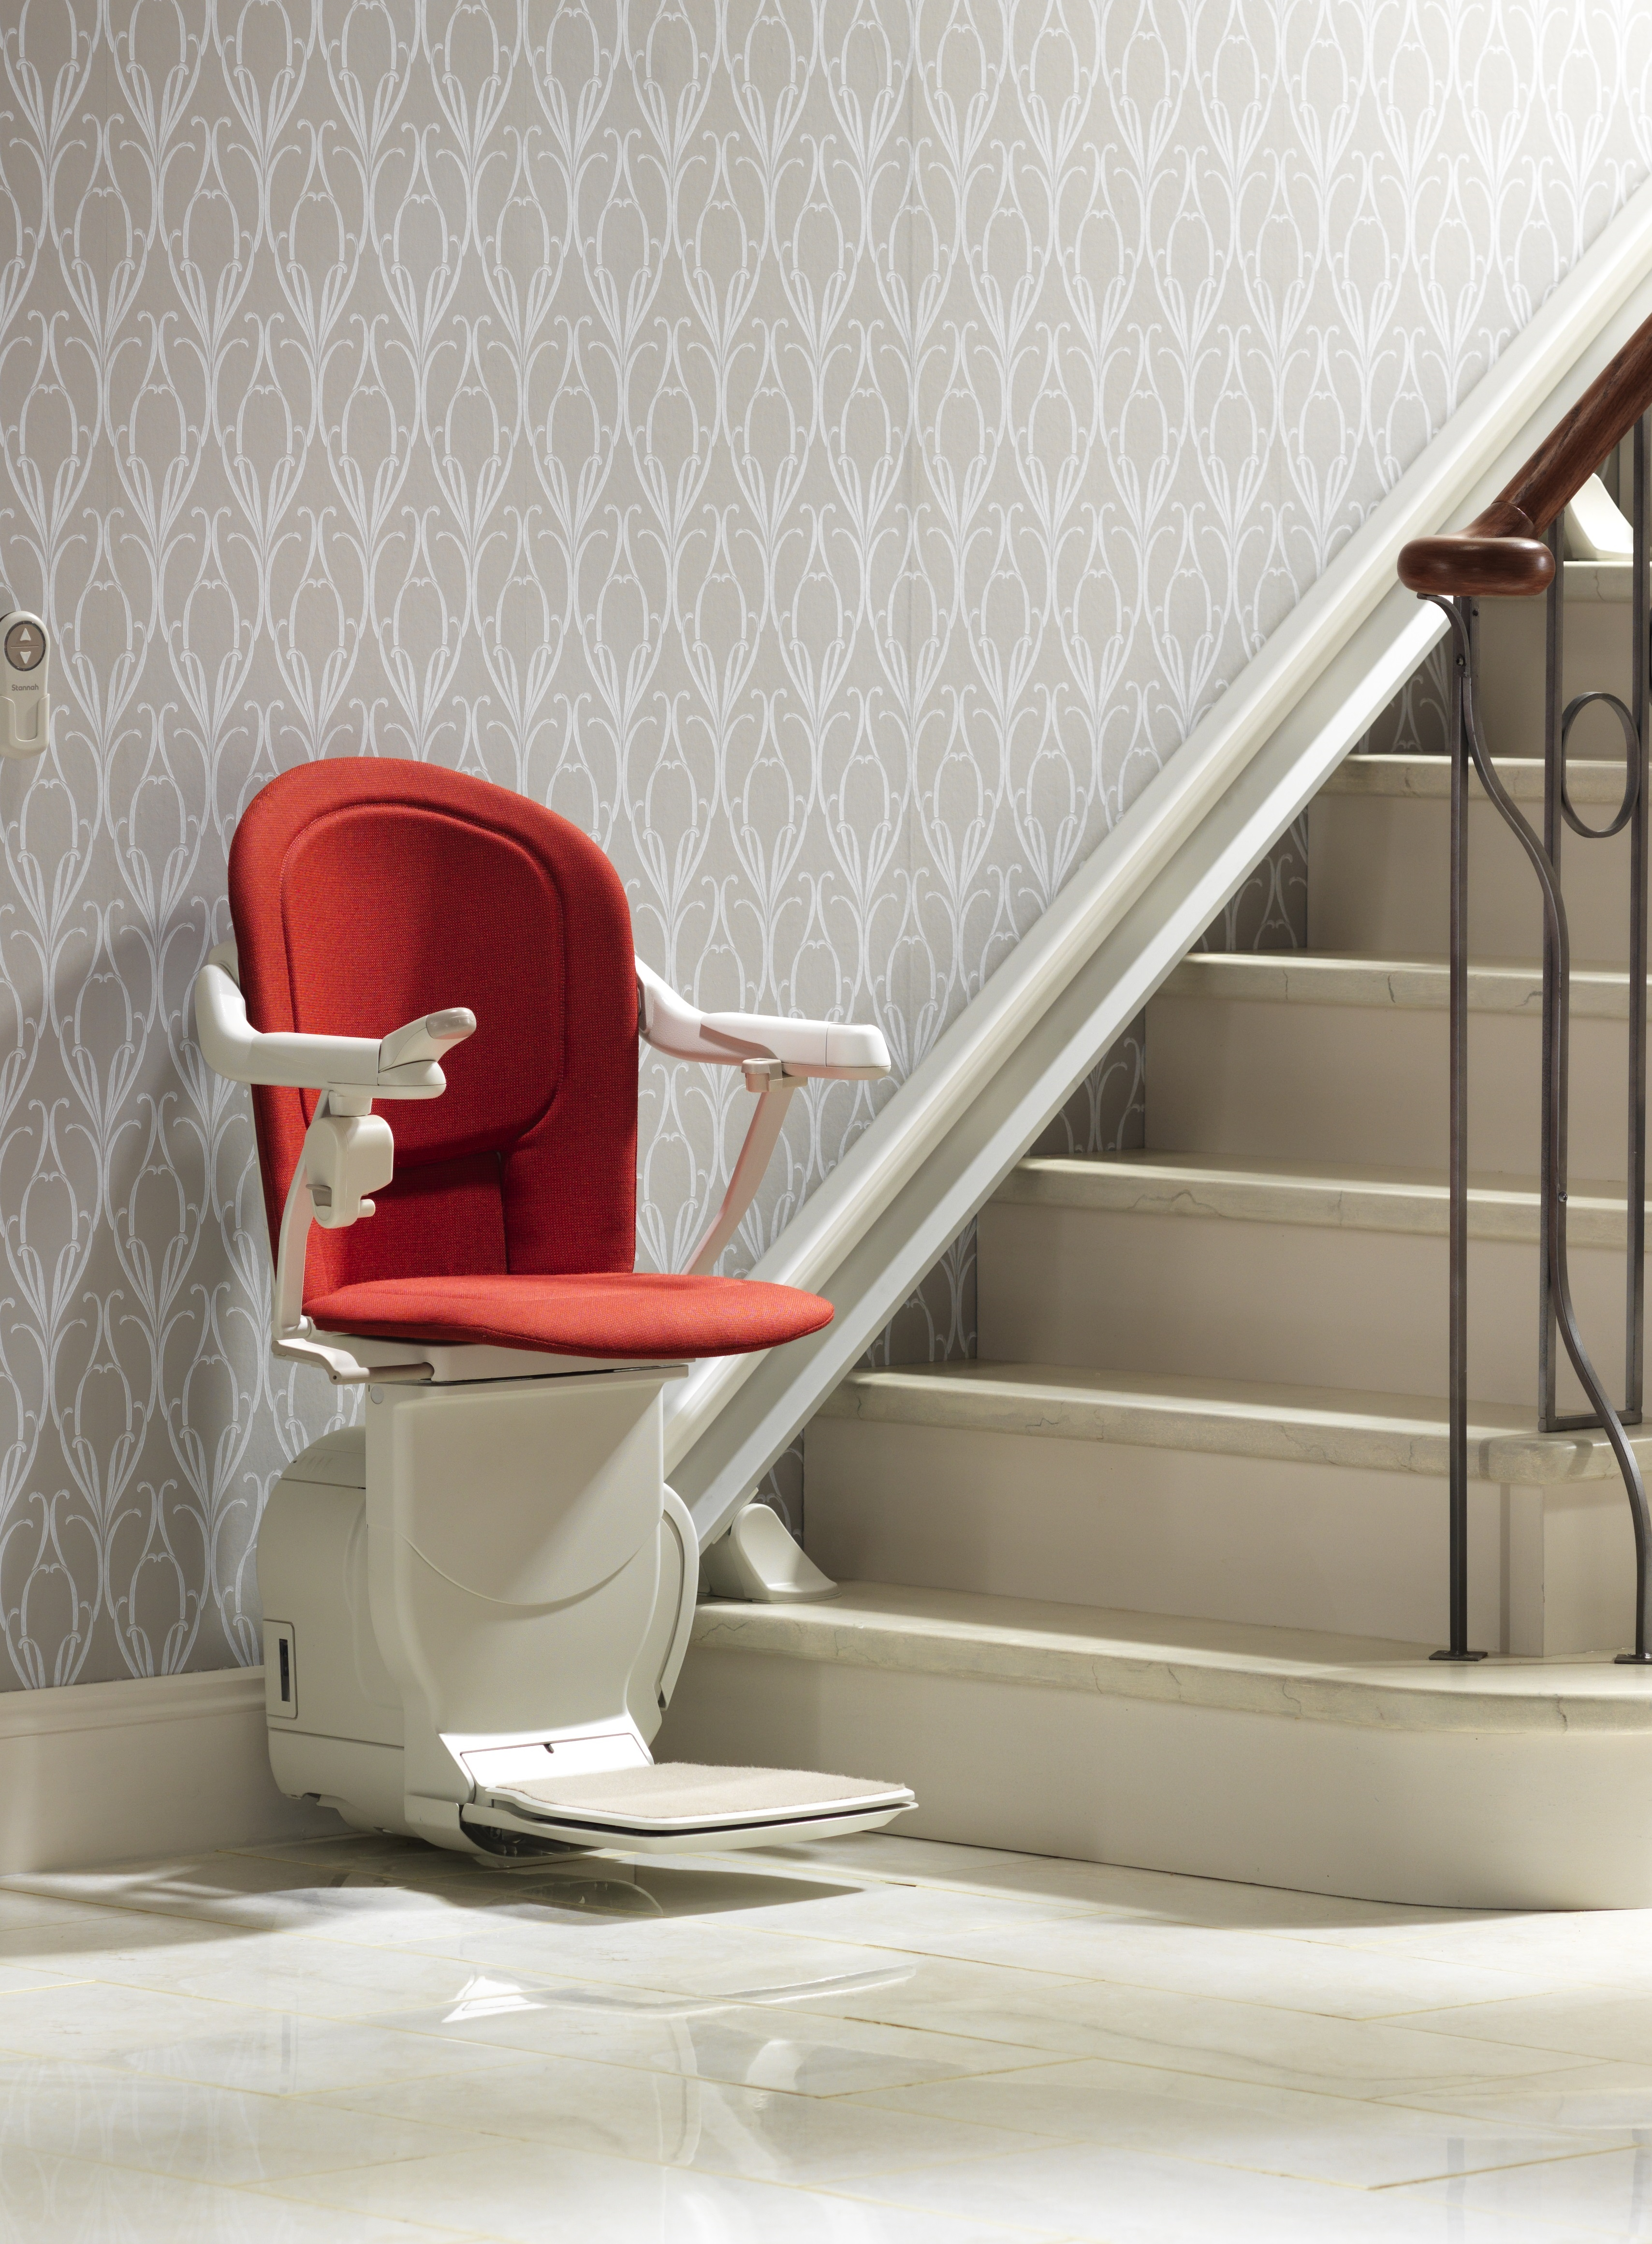 View of a stair lift chair sofia